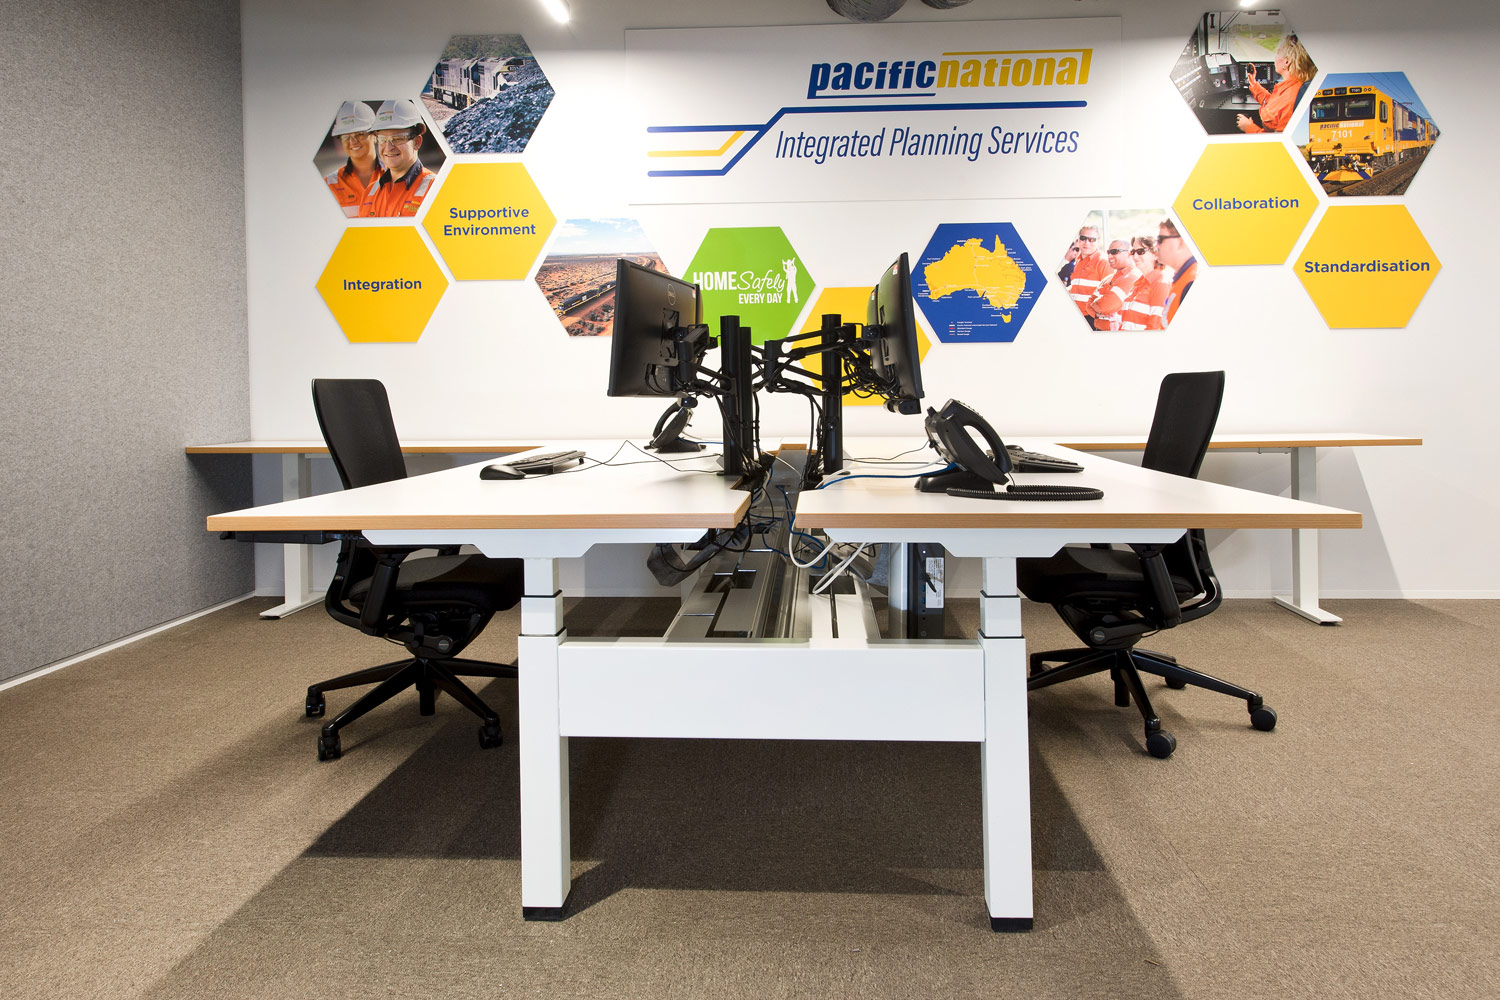 Actif three-stage, electric height-adjustable linear workstations